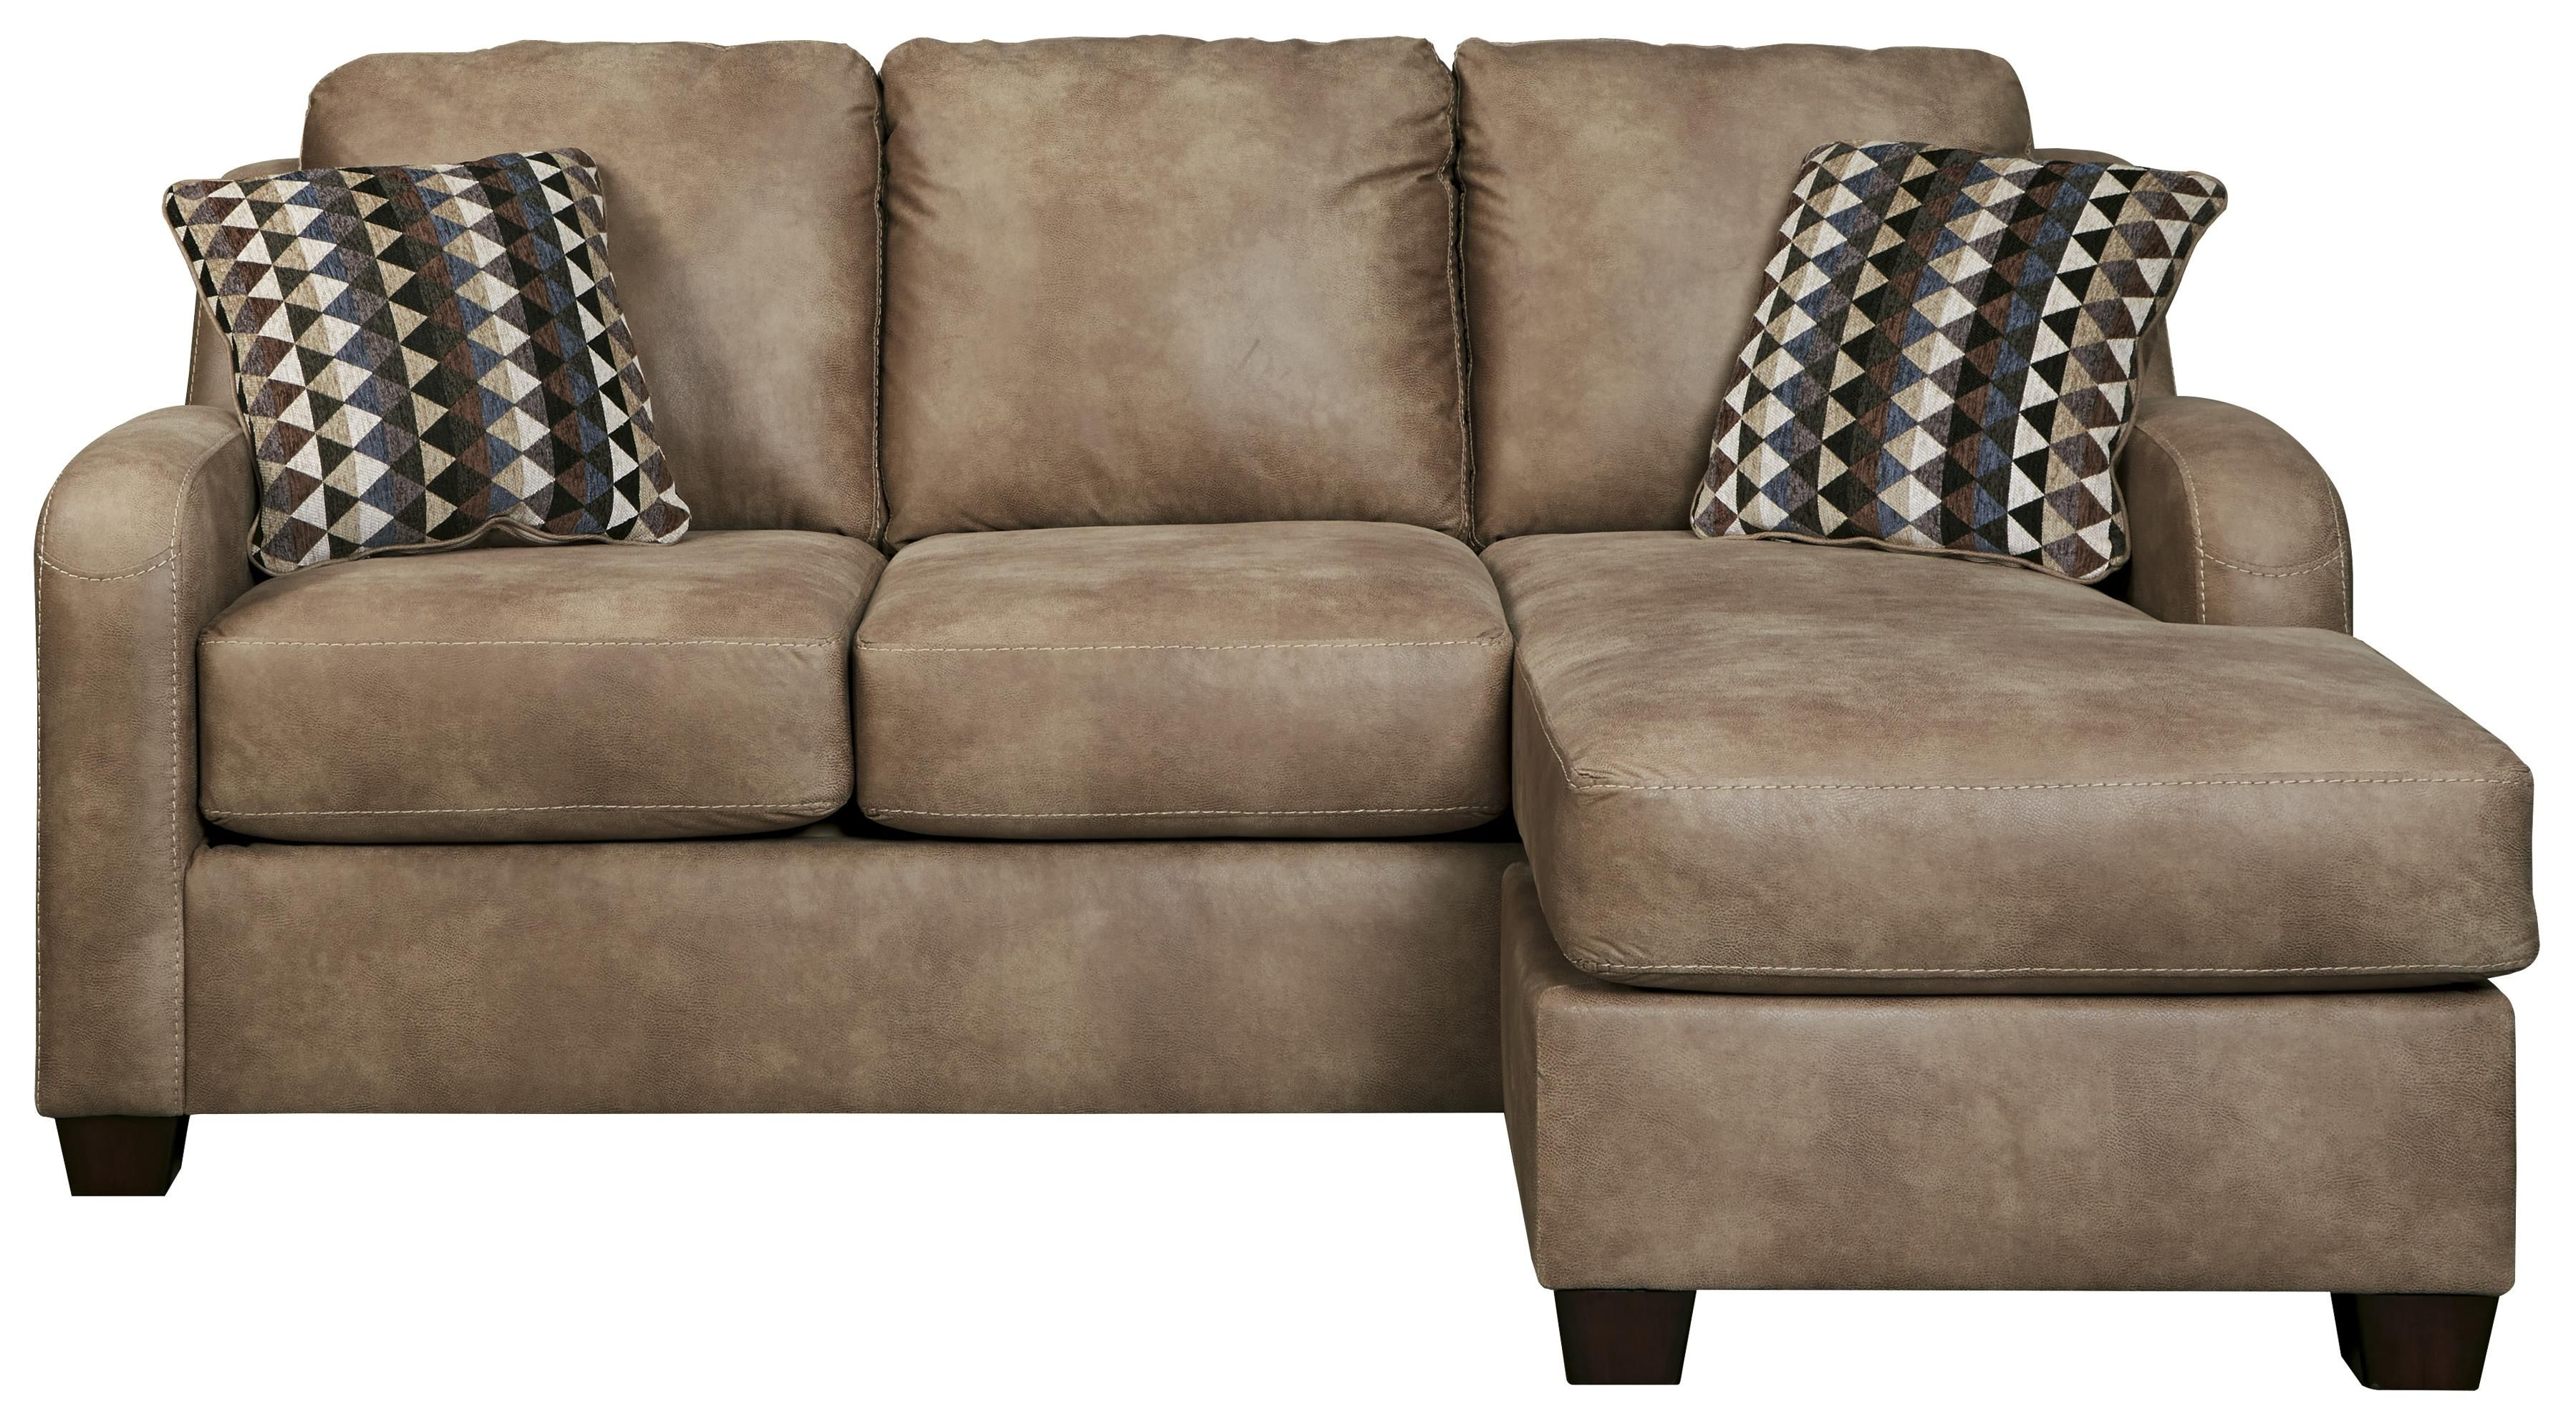 Benchcraft Leather Sofa In 2020 Faux Leather Sofa Leather Corner Sofa Brown Leather Corner Sofa